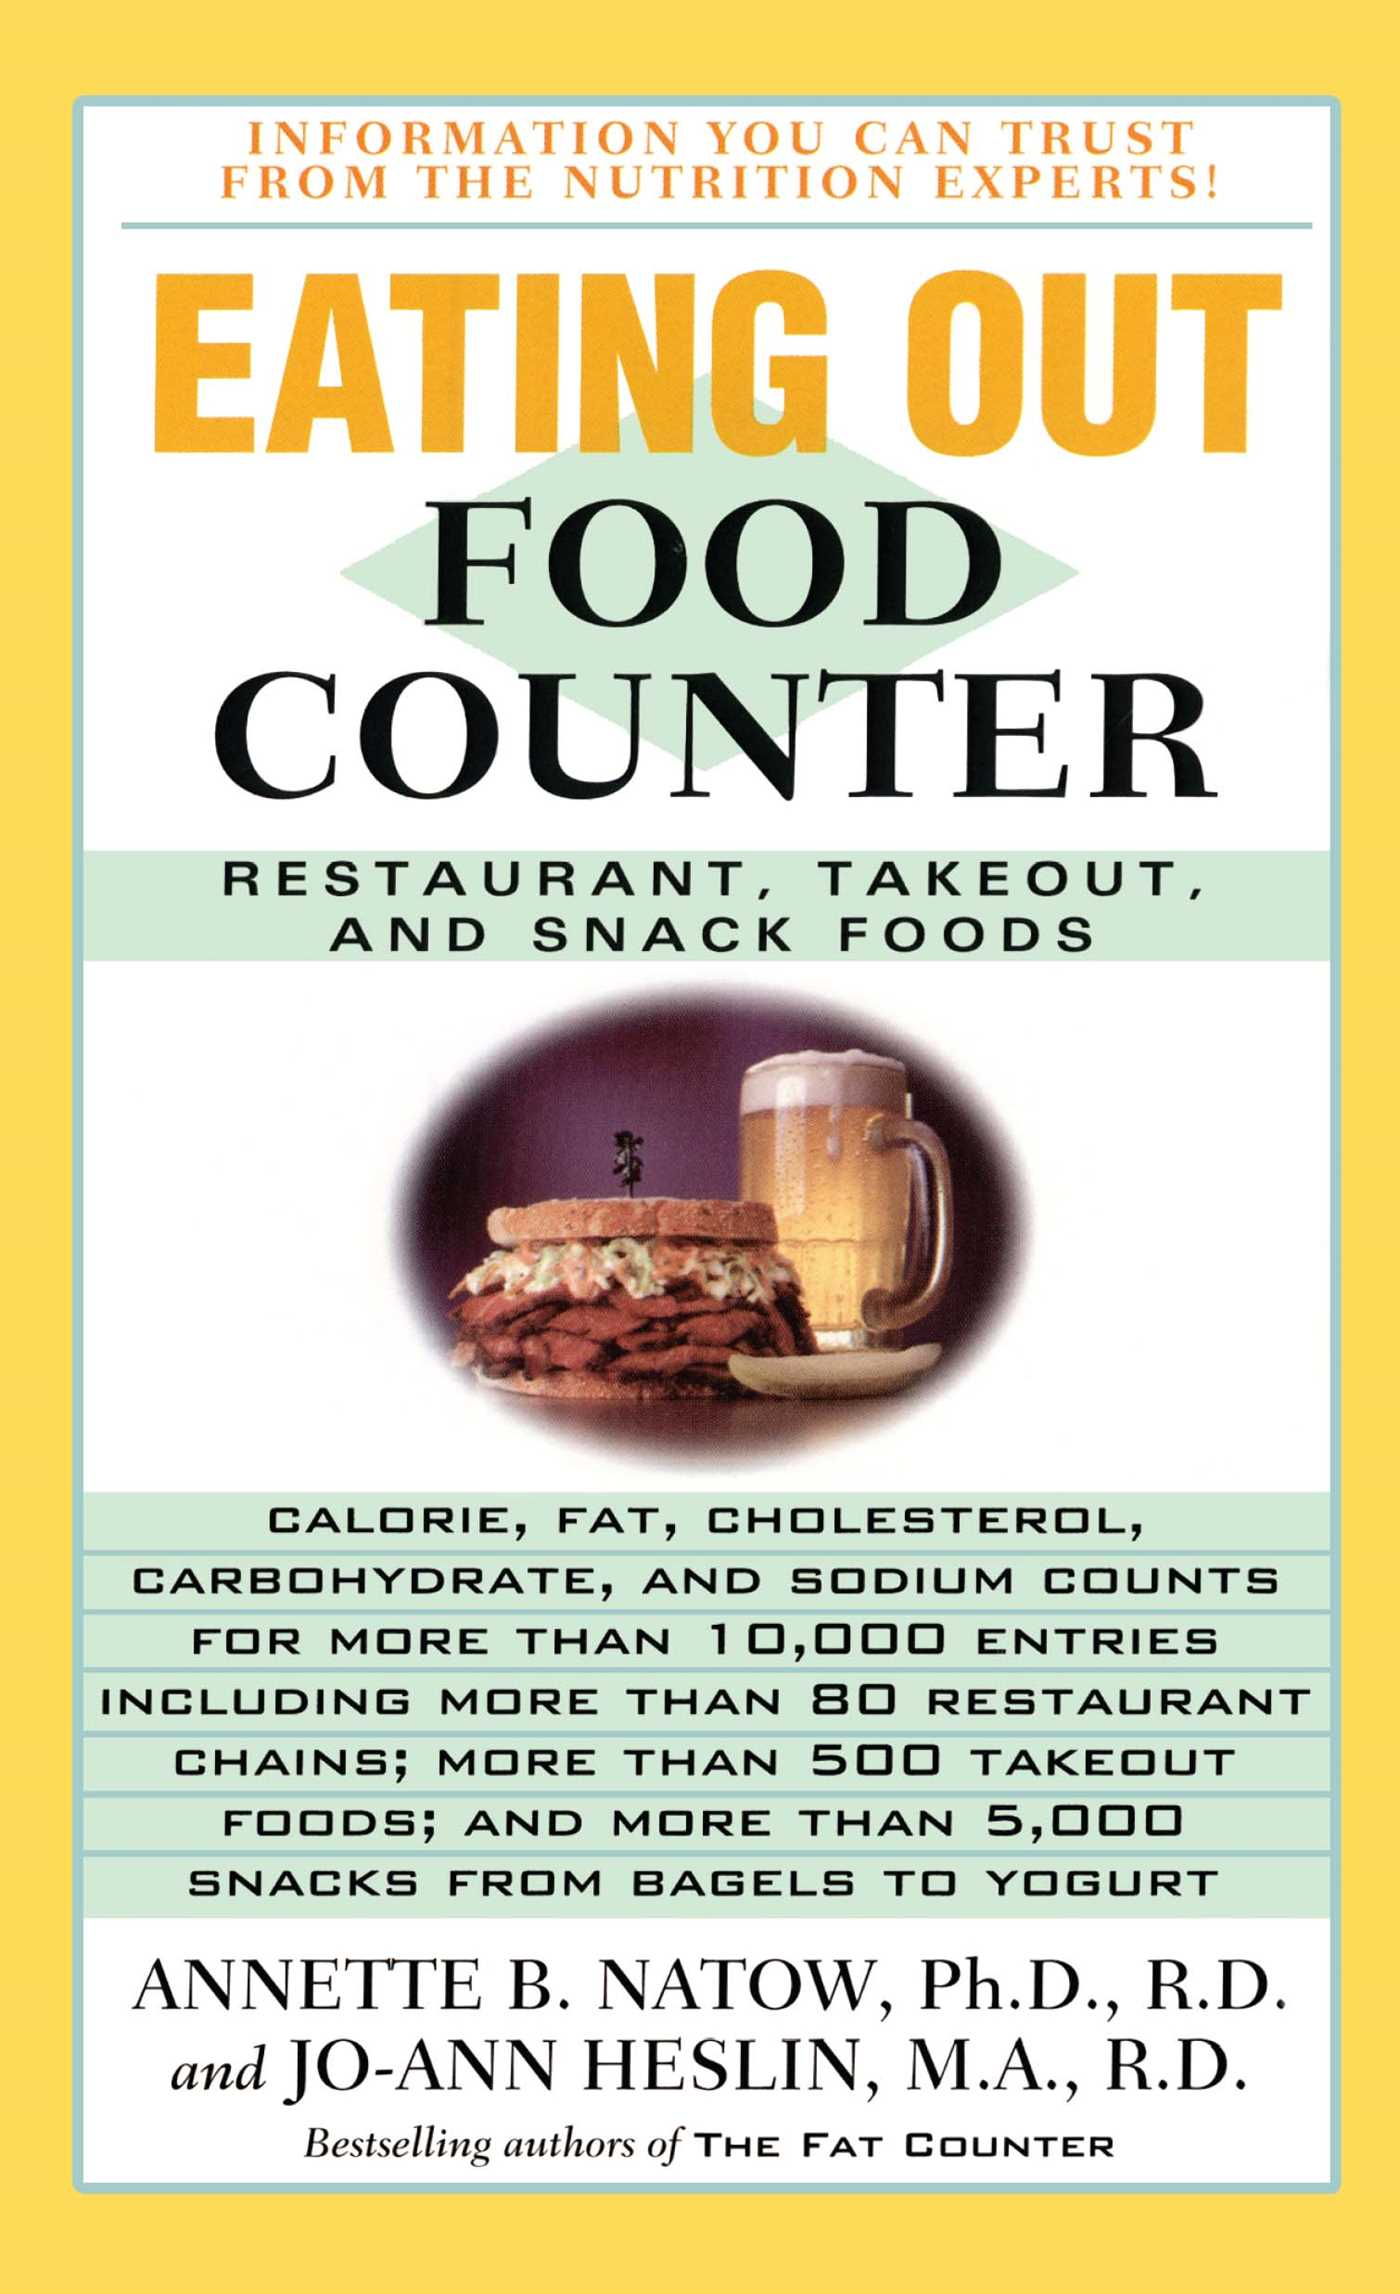 eating out food counter book by annette b natow official